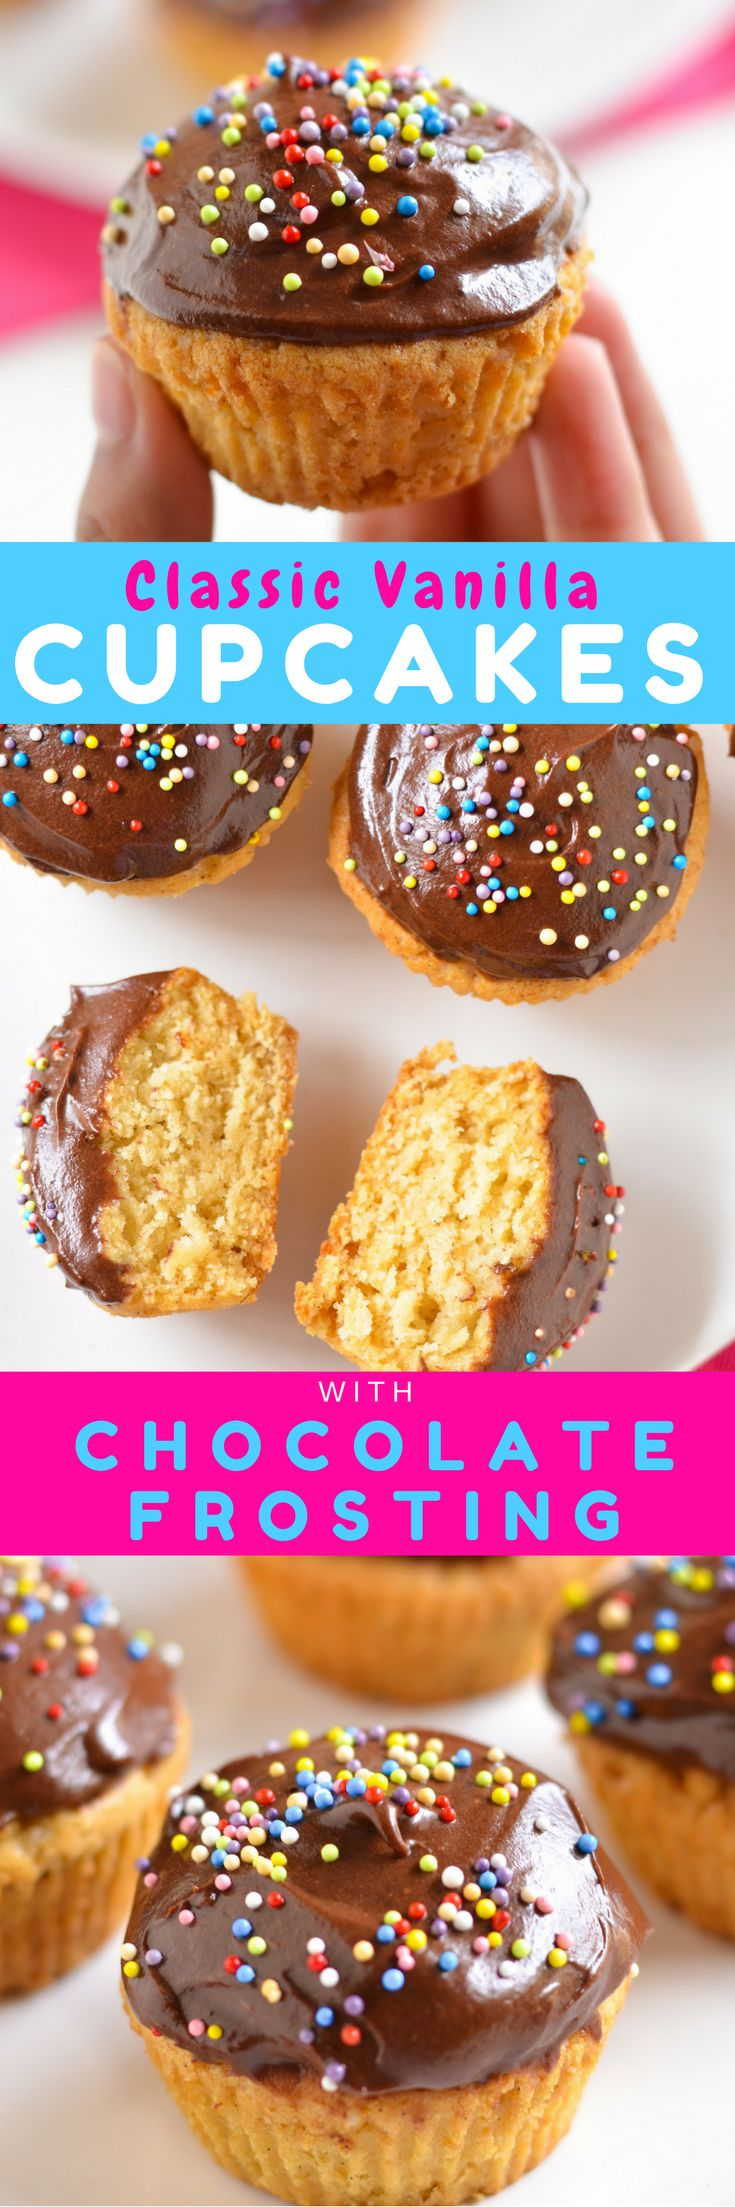 Moist #Classic Vanilla #Cupcakes with Chocolate Frosting come easy and #eggless with this simple #recipe!#fromscratch #homemade #homemadecake #desserts